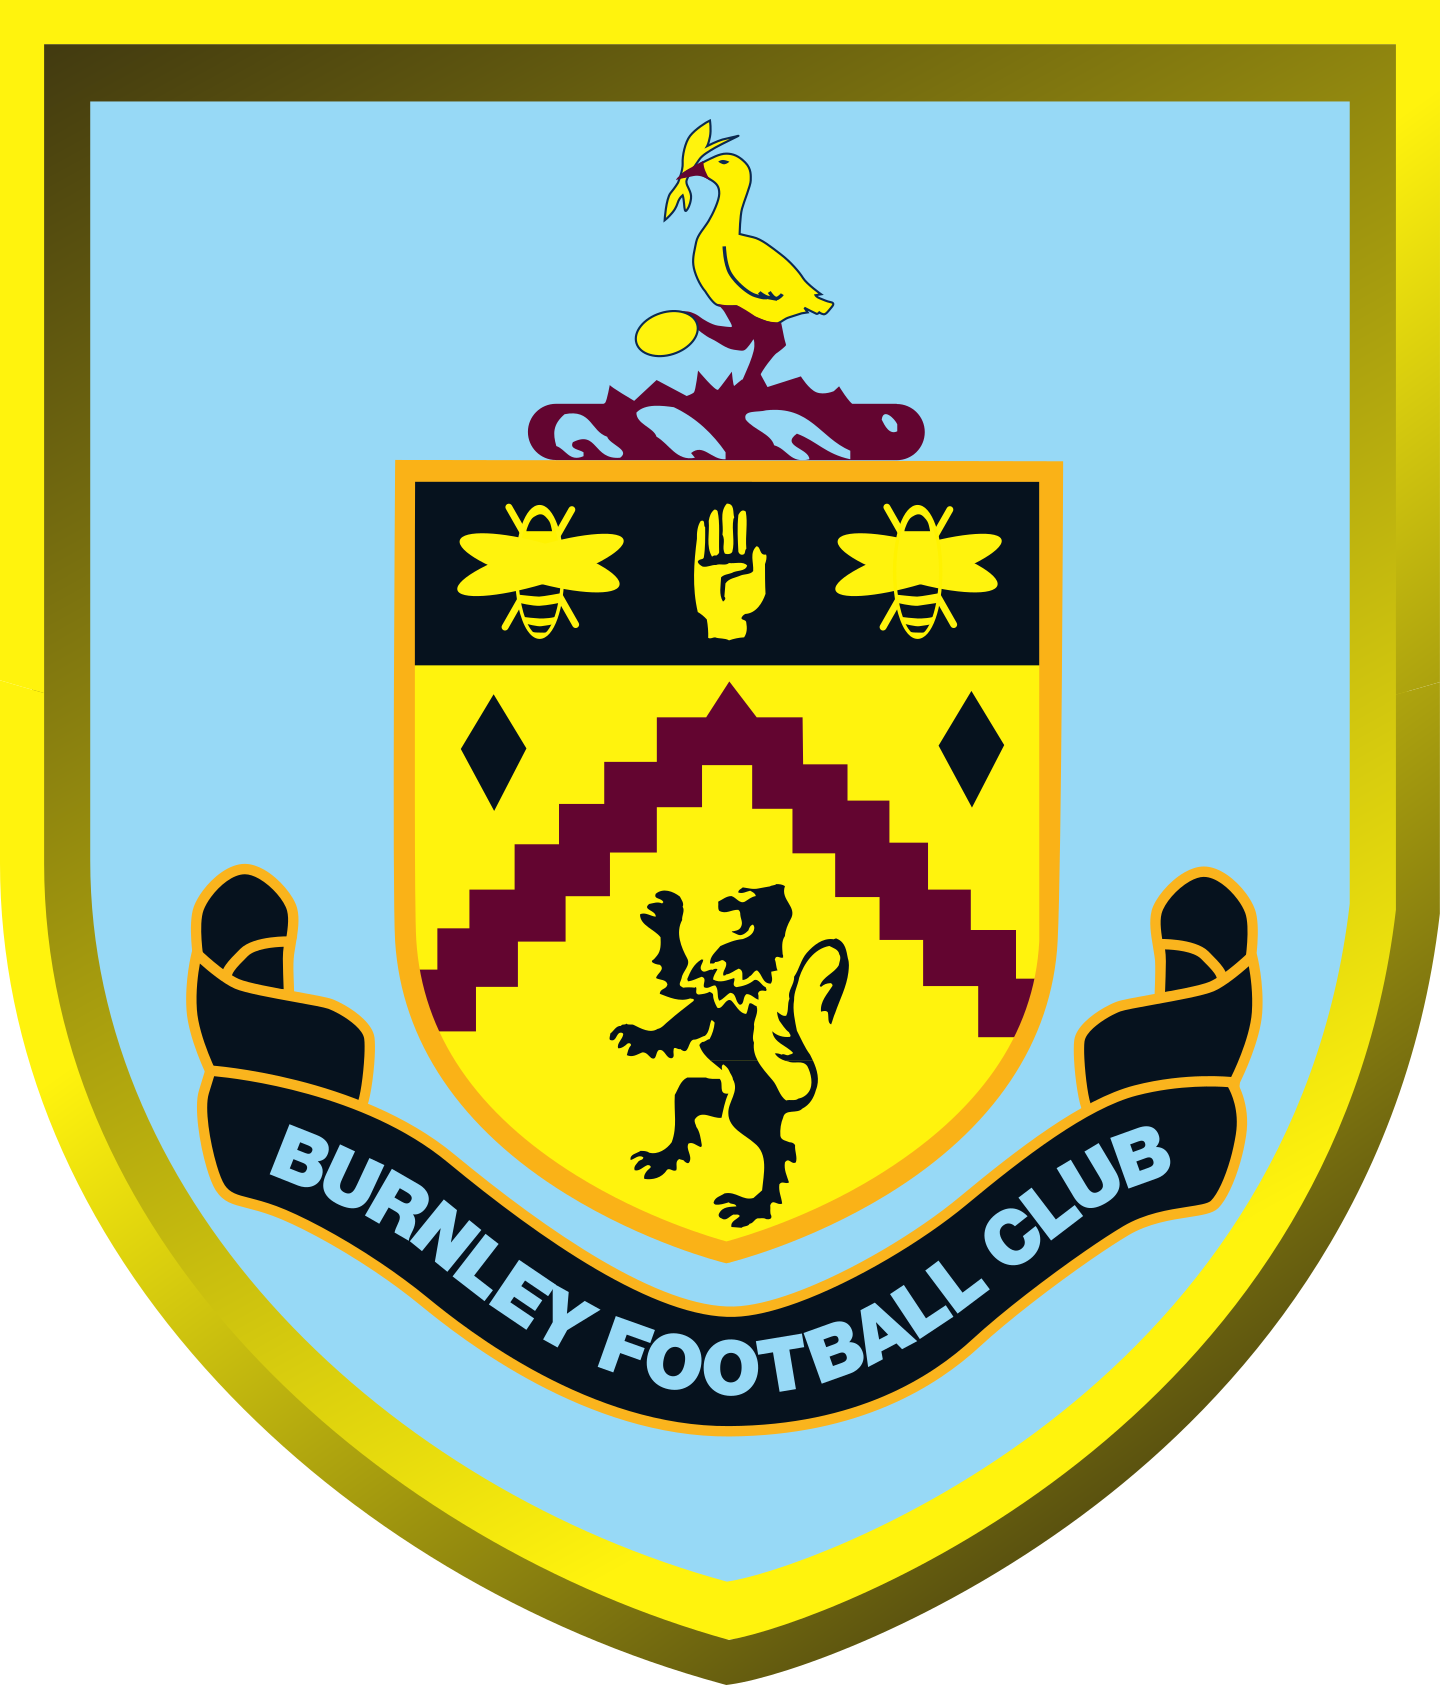 burnley logo 2 - Burnley FC Logo